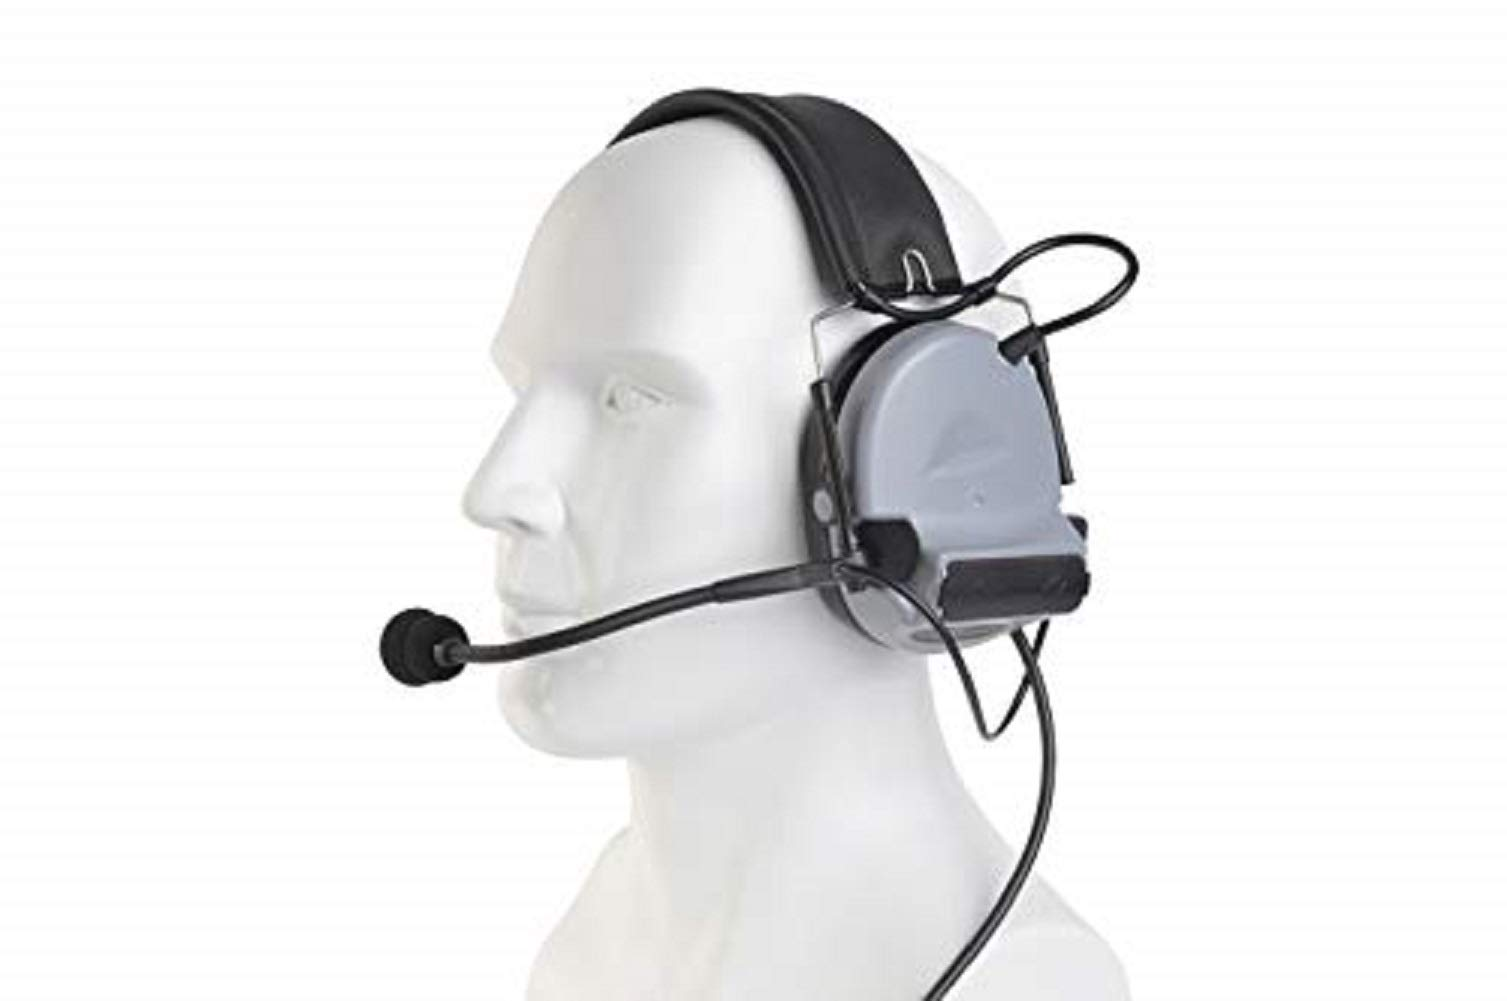 【Z-TAC Official Store】 C2 Cii CII Z-Tactical Headset Airsoft, Hunting Noise Reduction Tactical Headphones with Microphone Z041-SG by ZTAC